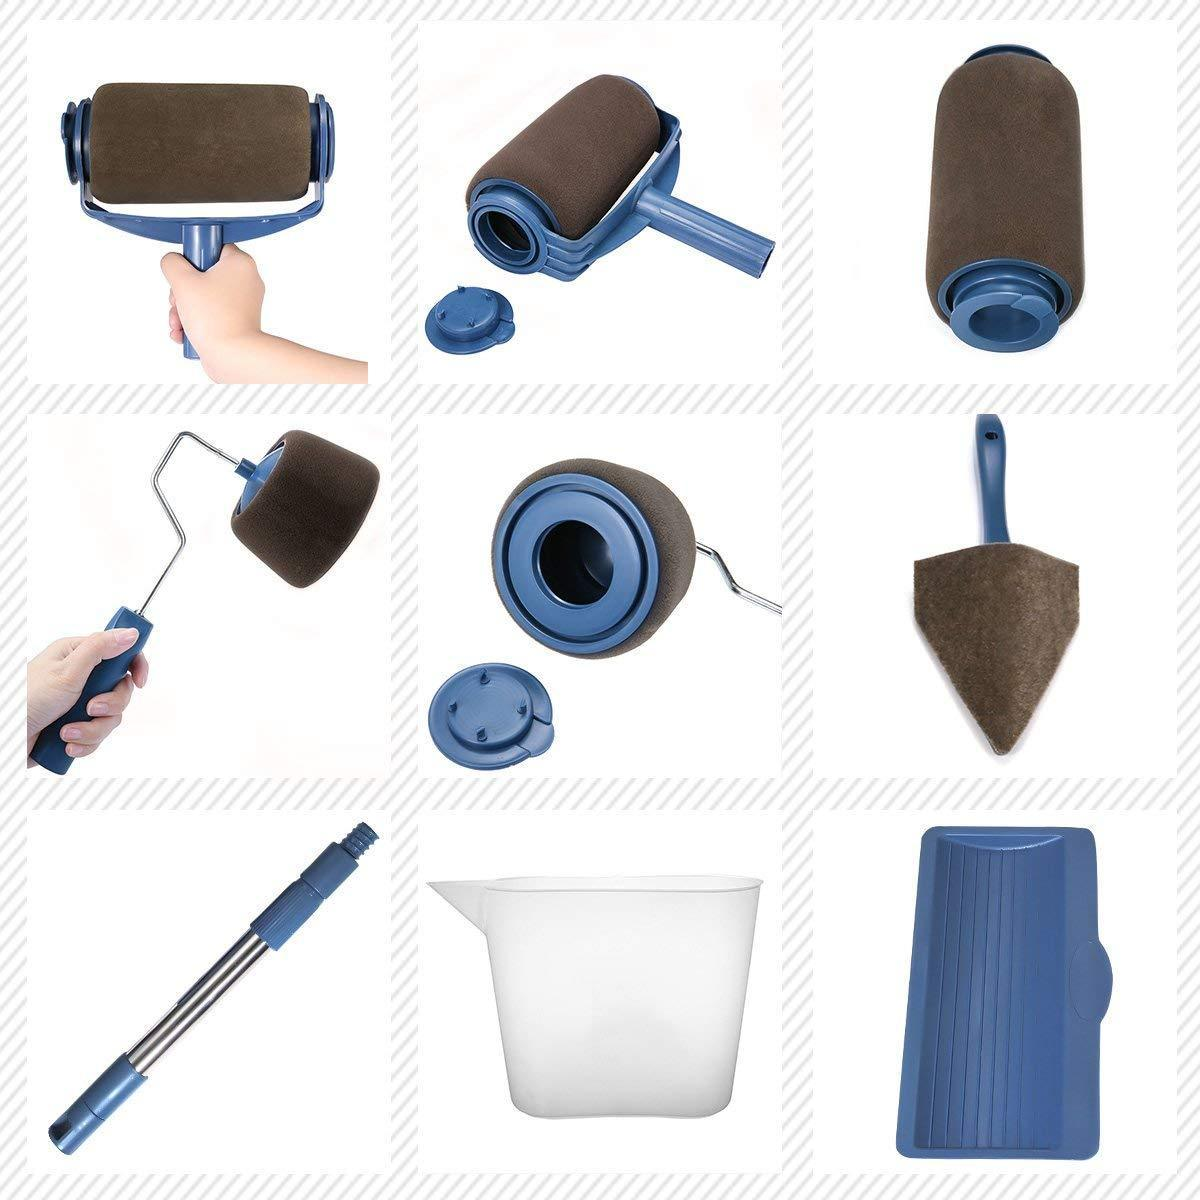 Hot selling-8Pcs/set Multifunctional Household Use Wall Decorative Paint Roller Brush Tools